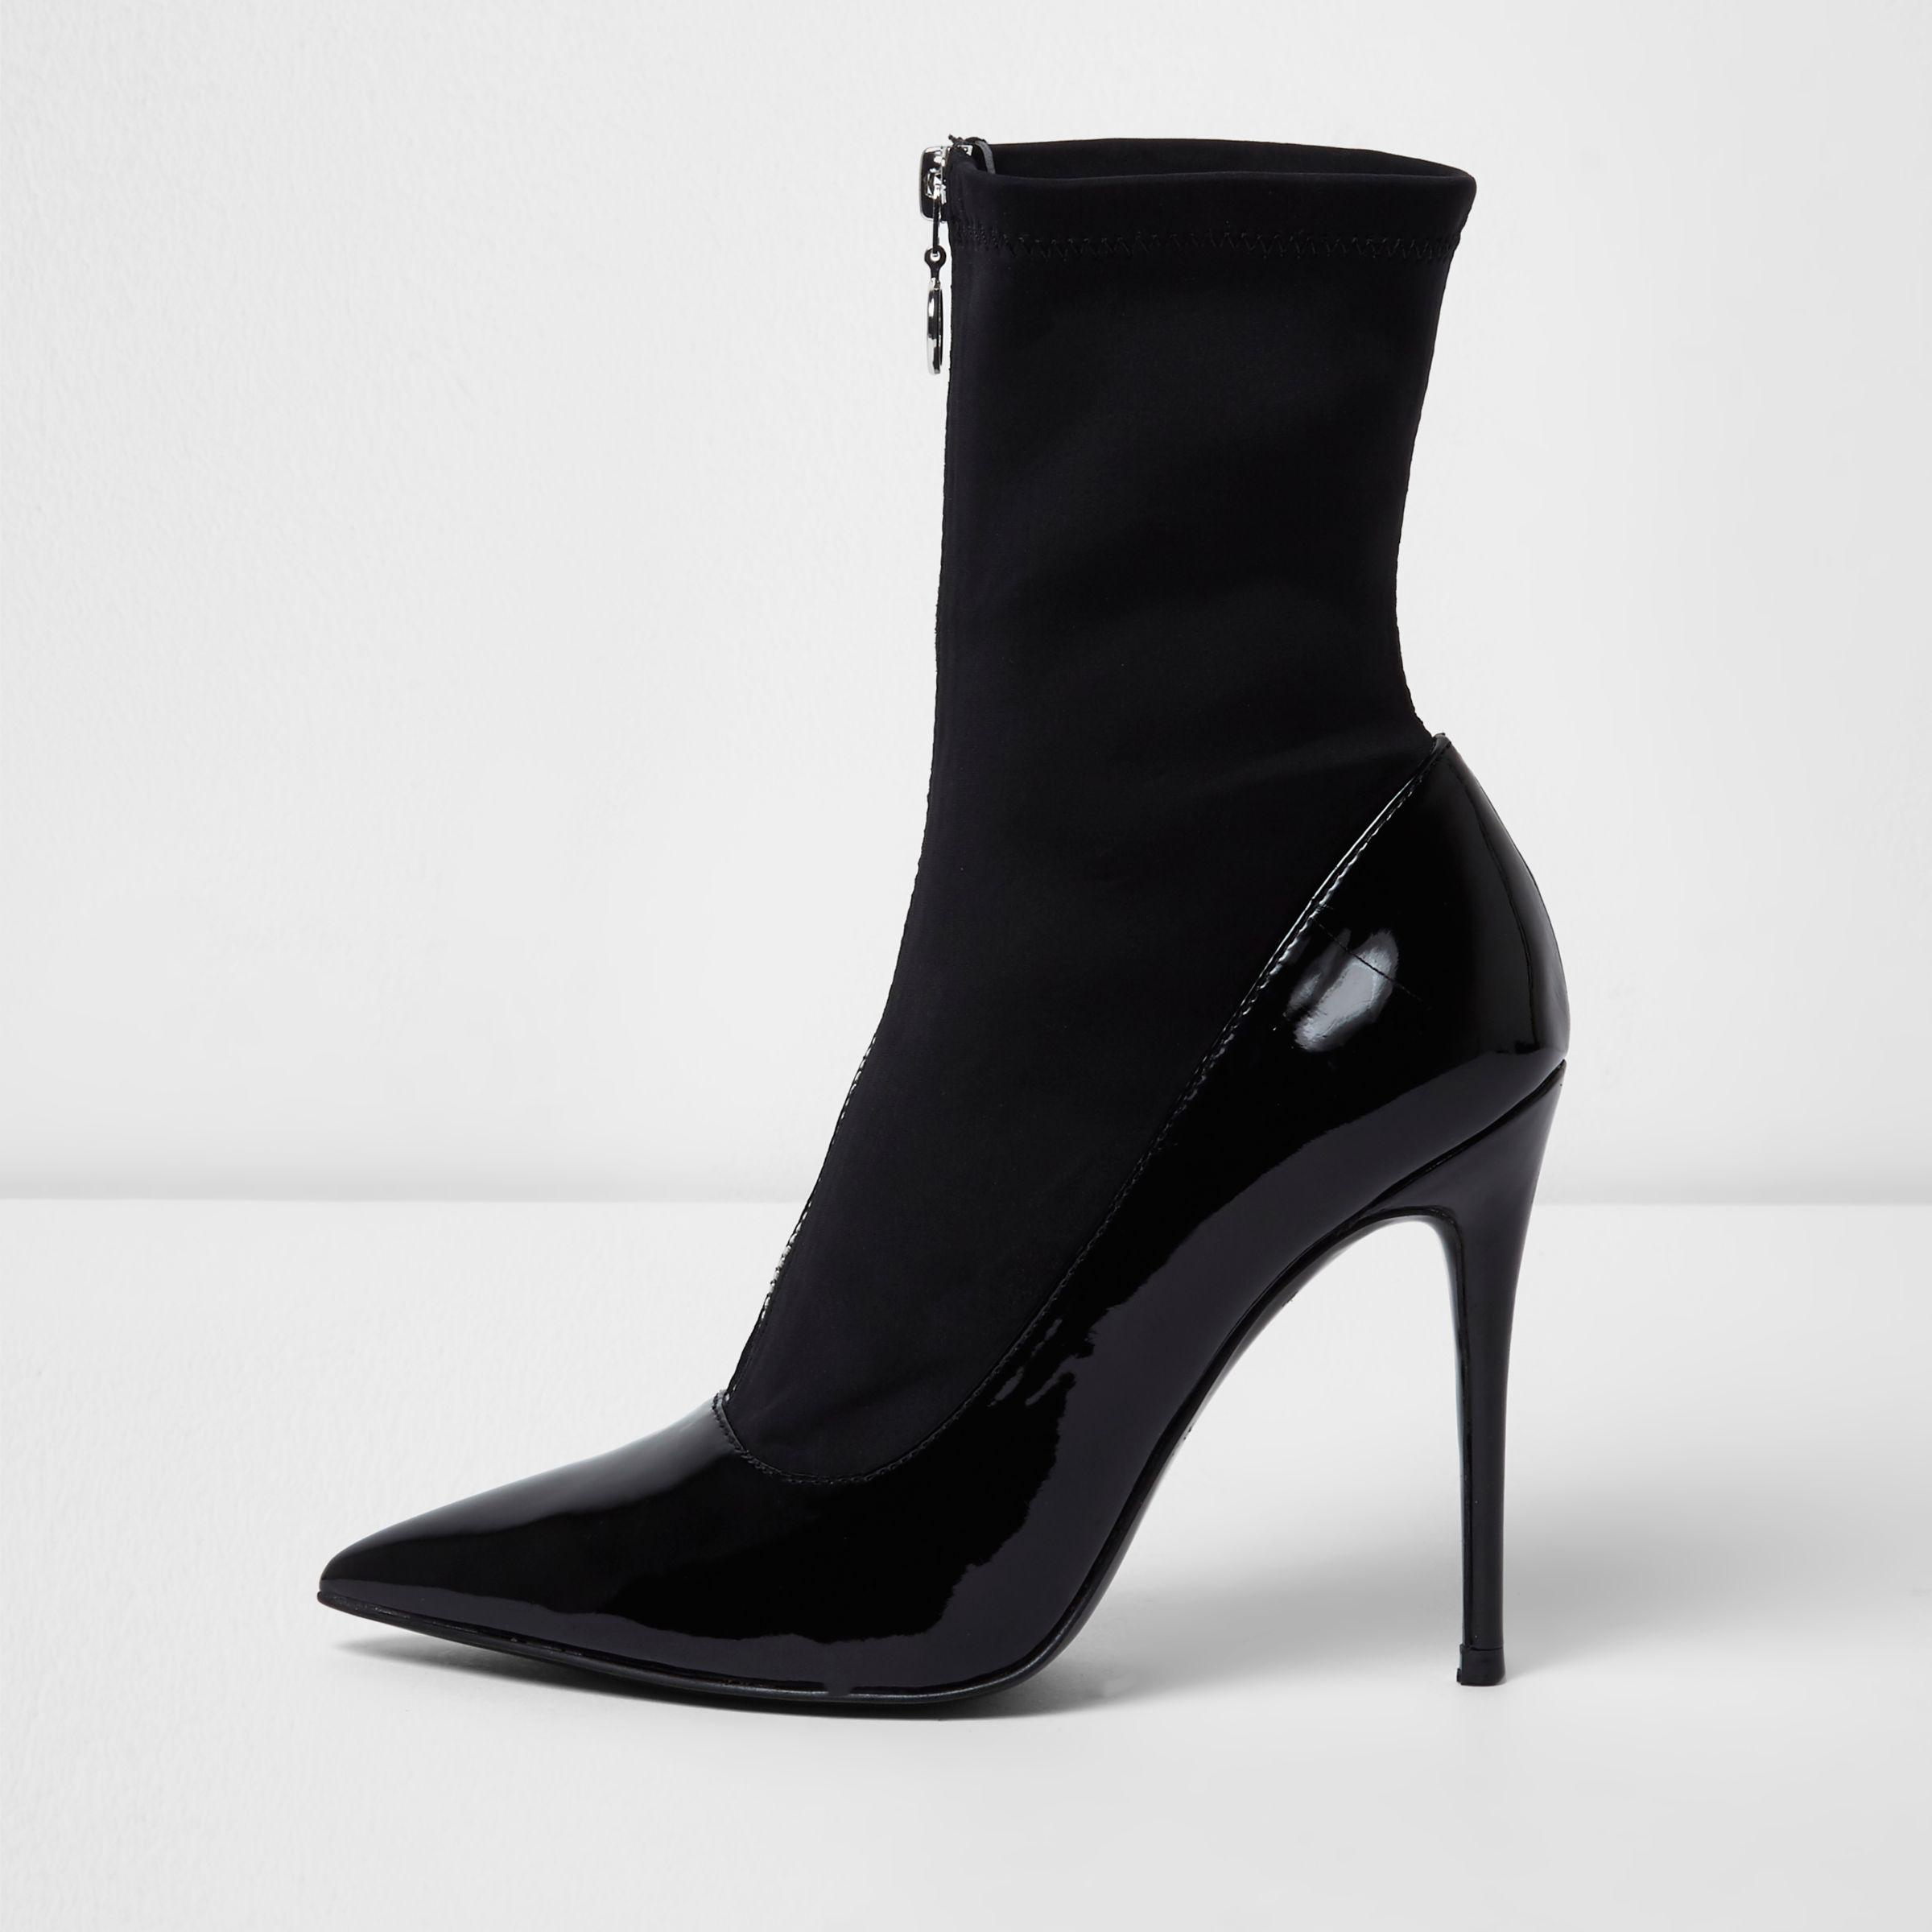 c58ee3bd627f River Island Black Patent Zip Front Sock Boots in Black - Lyst